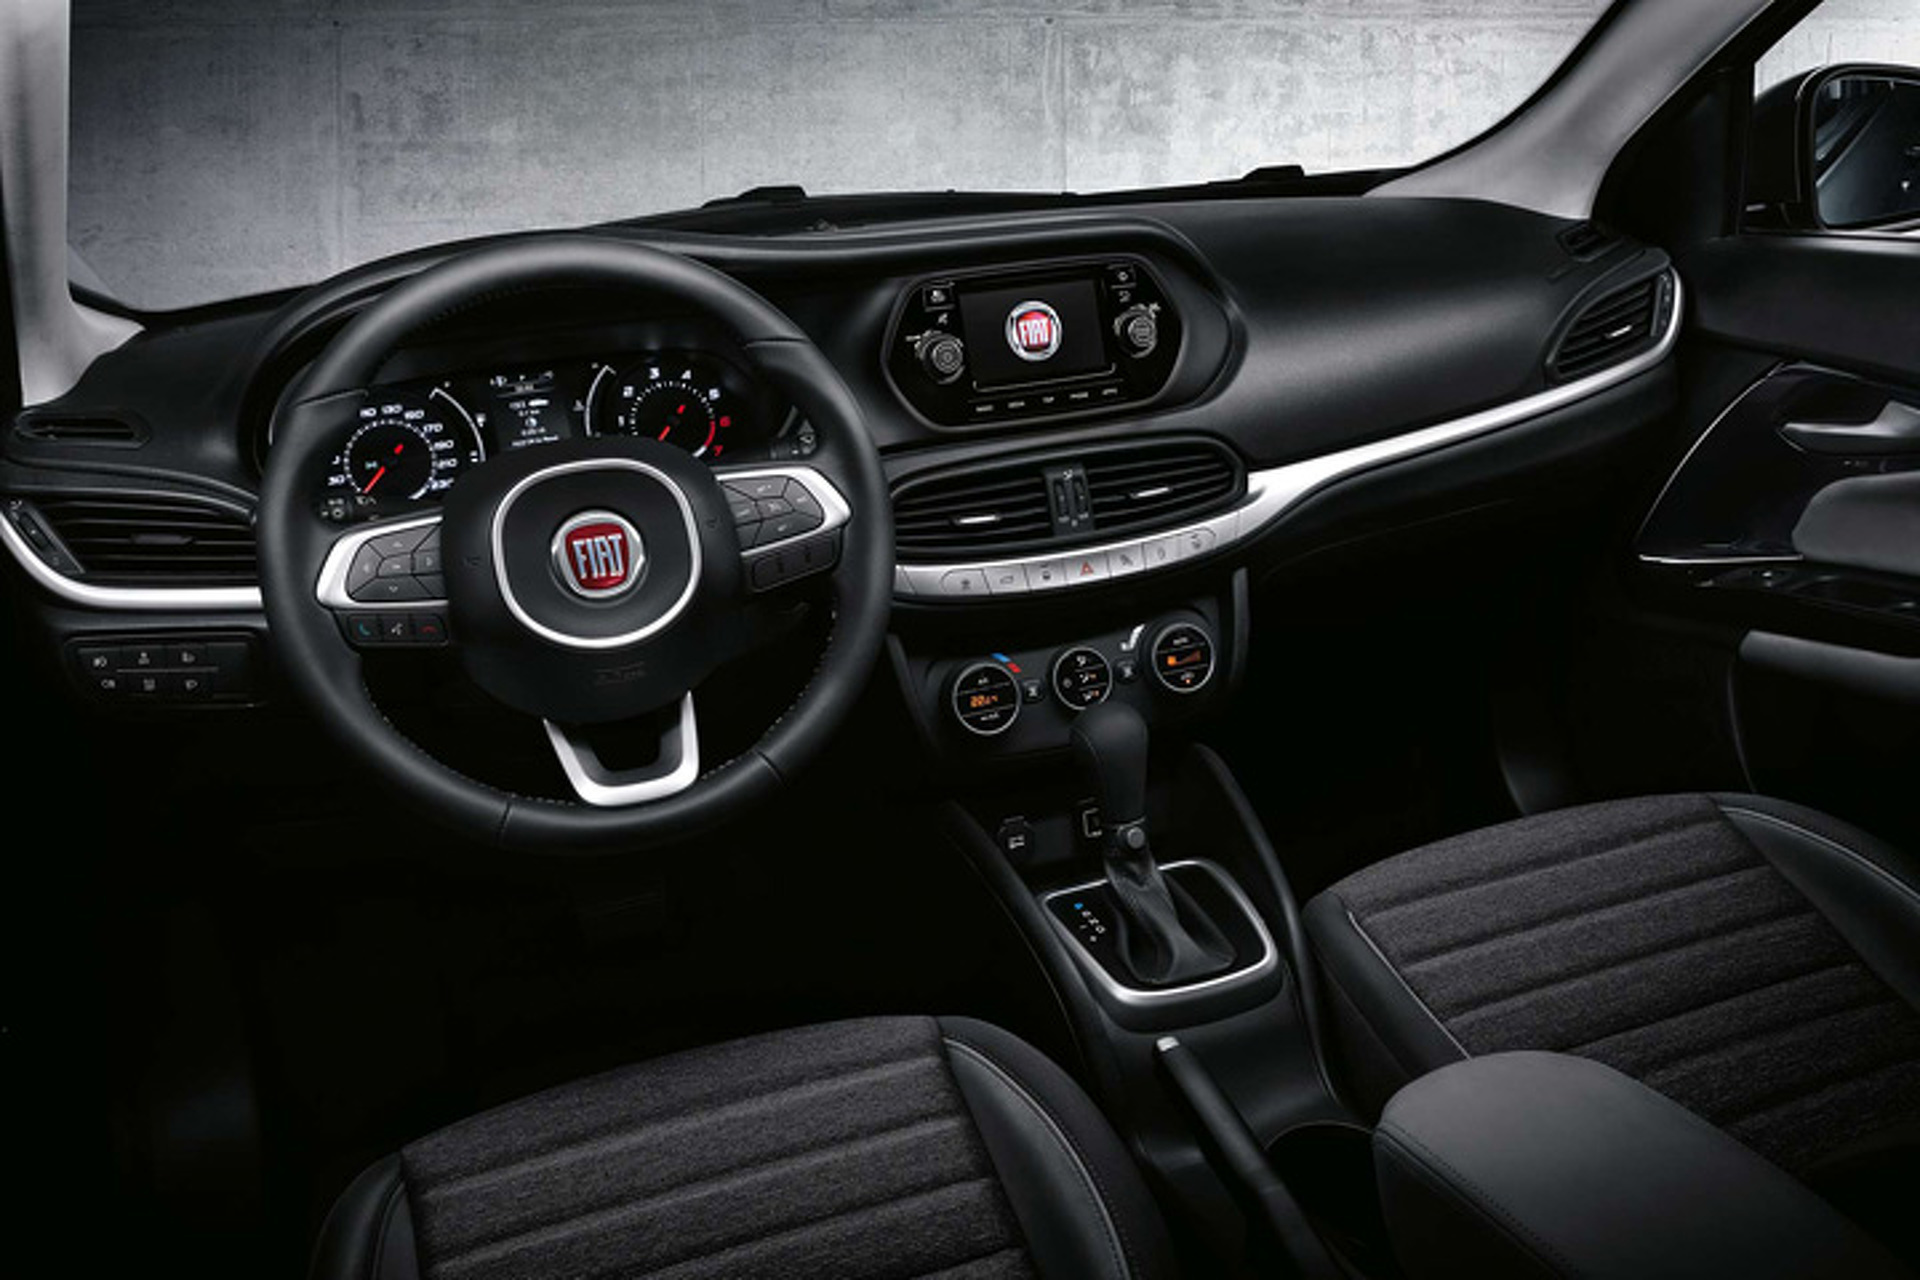 New Fiat Concept Looks Beautiful For a Compact Sedan